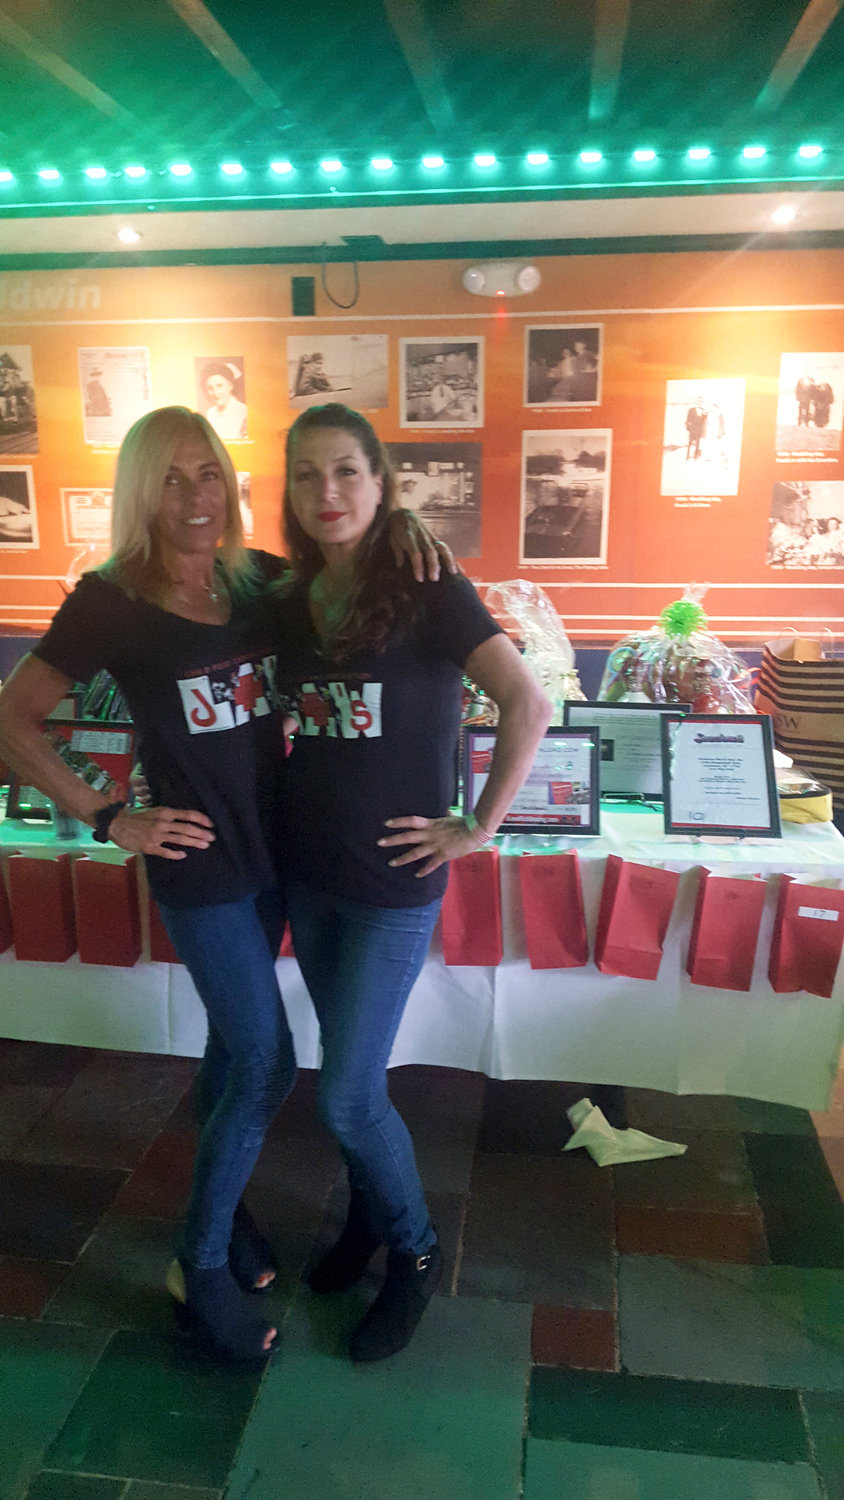 Vicki Bartolomeo, of Seaford, left, and Joan Huhues, of Baldwin, held a fundraiser at Sonny's Canal House, in Baldwin Harbor, on July 23, to raise awareness about the dangers of choking.